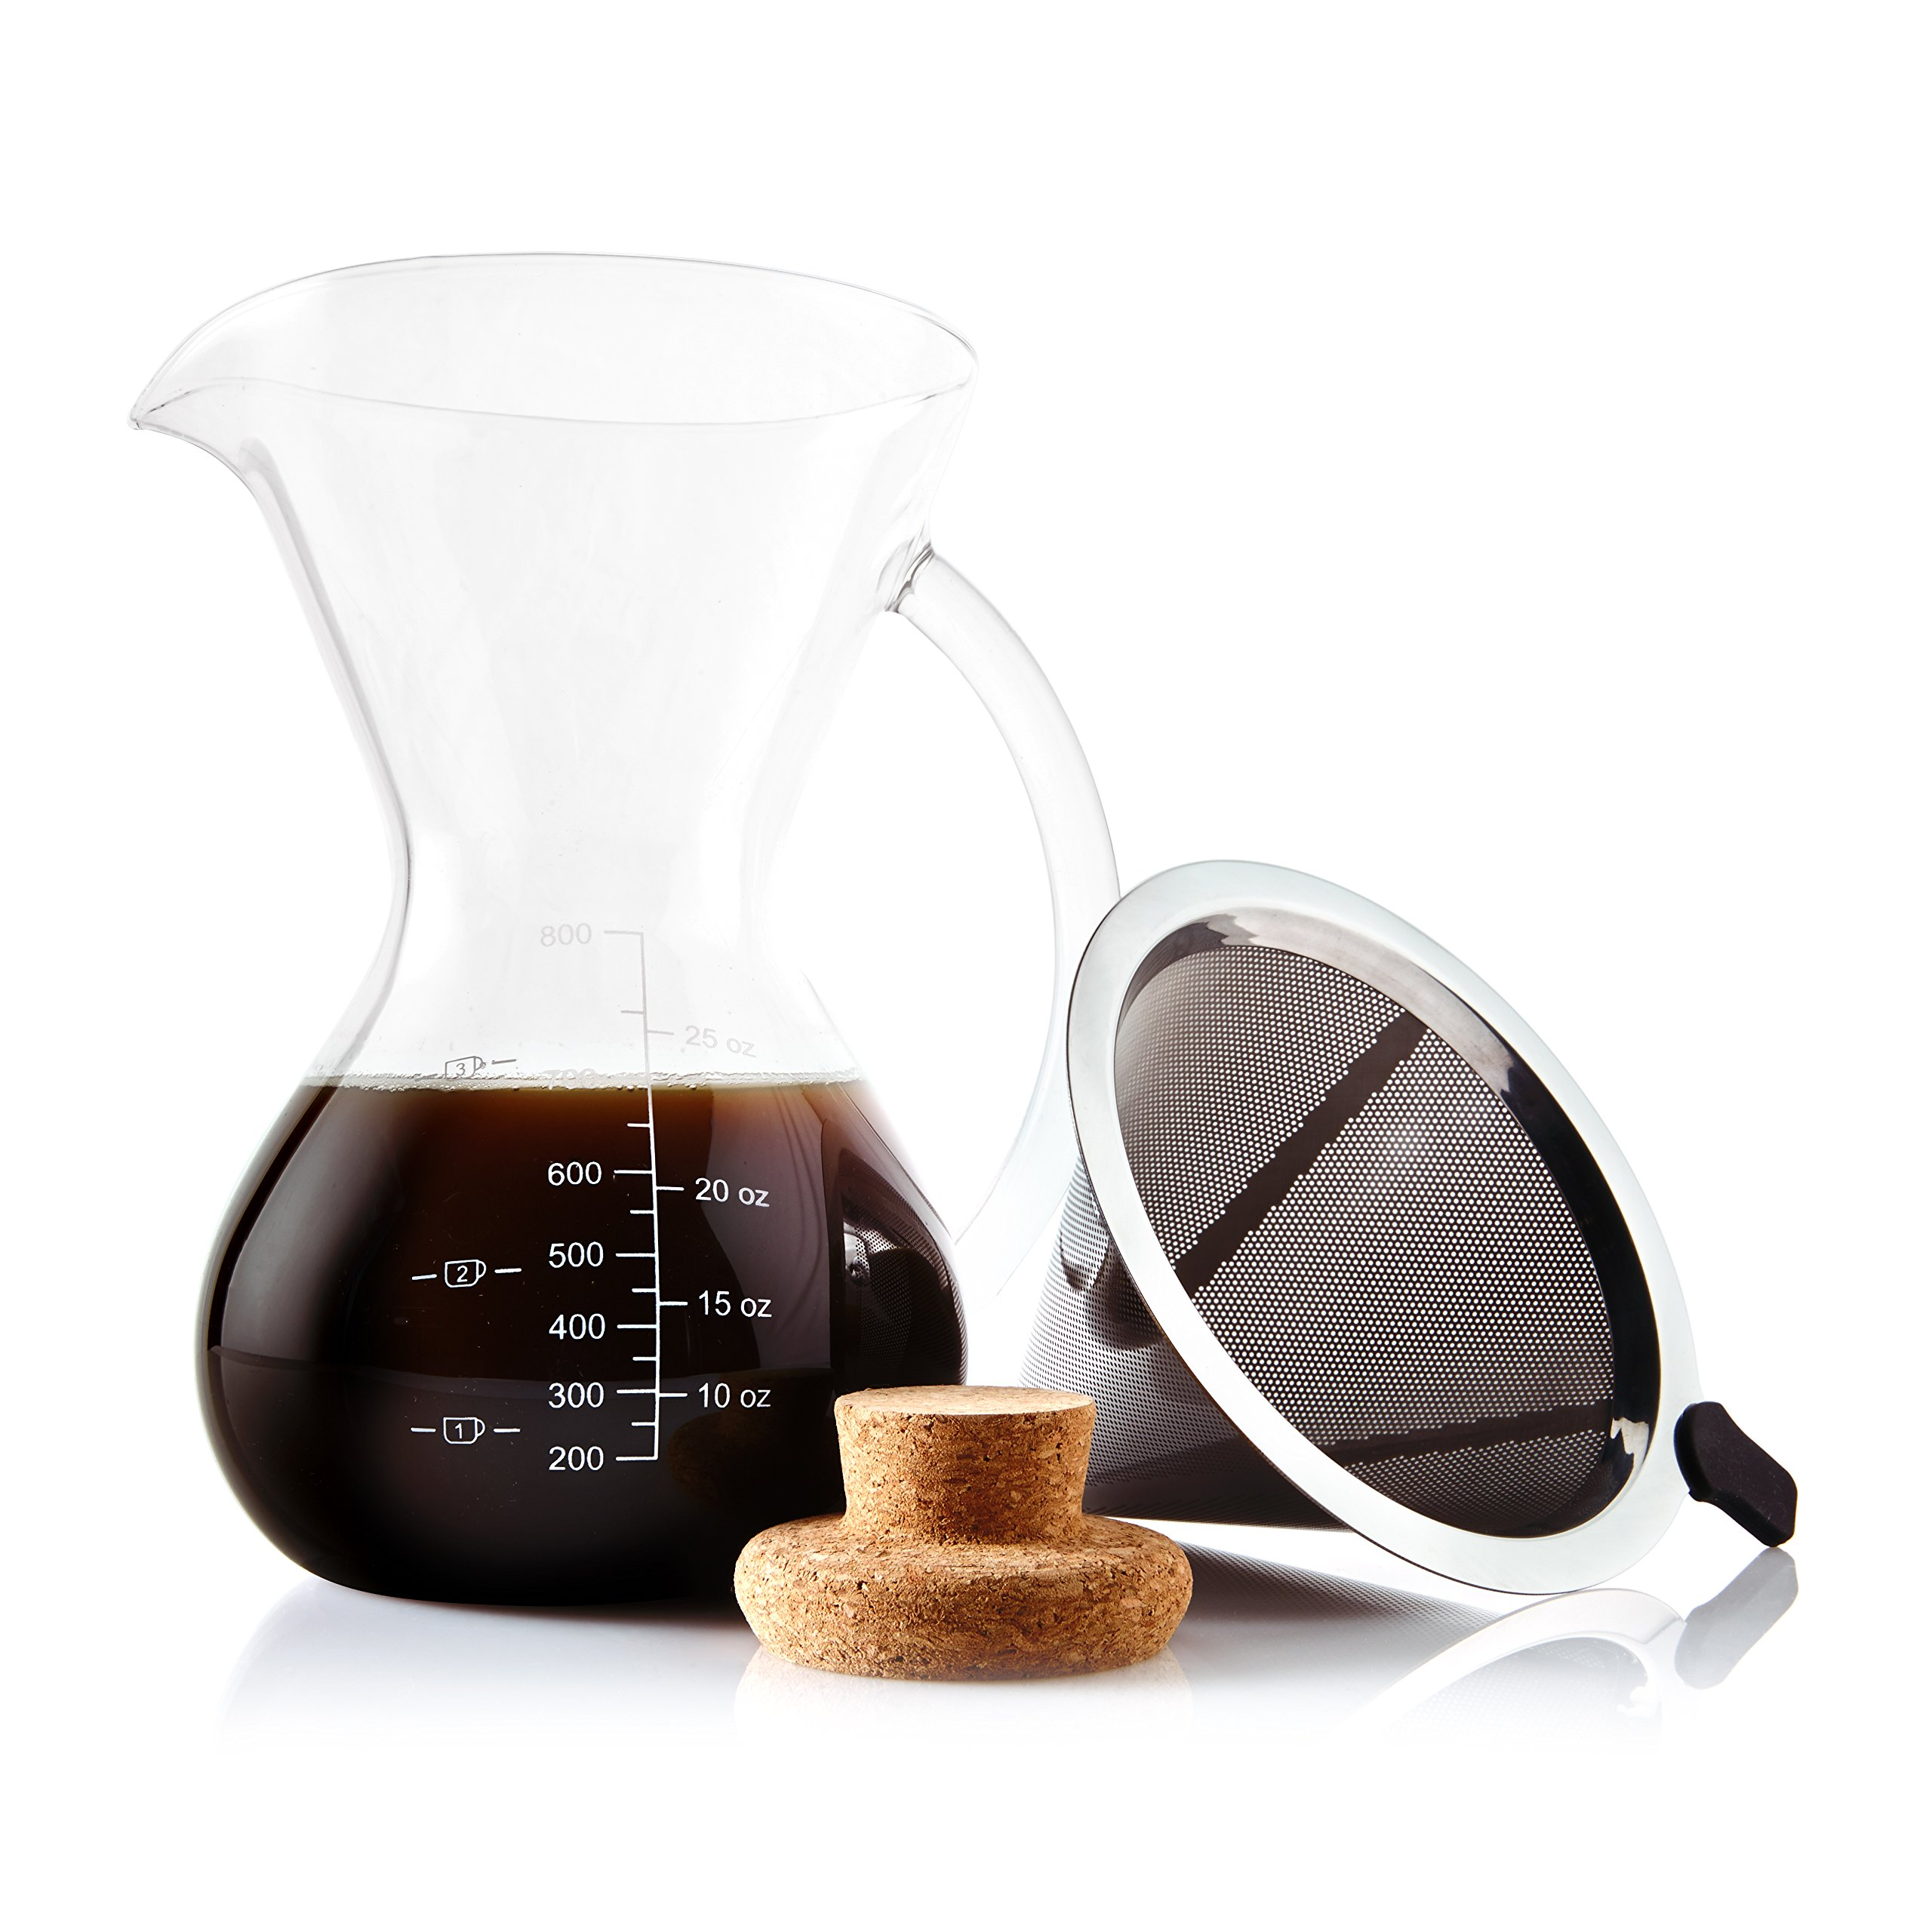 Apace Living Pour Over Coffee Maker Set w/Coffee Scoop and Cork Lid - Elegant Coffee Dripper Pot w/Glass Carafe & Permanent Stainless Steel Filter (800 ml / 27 oz) by Apace Living